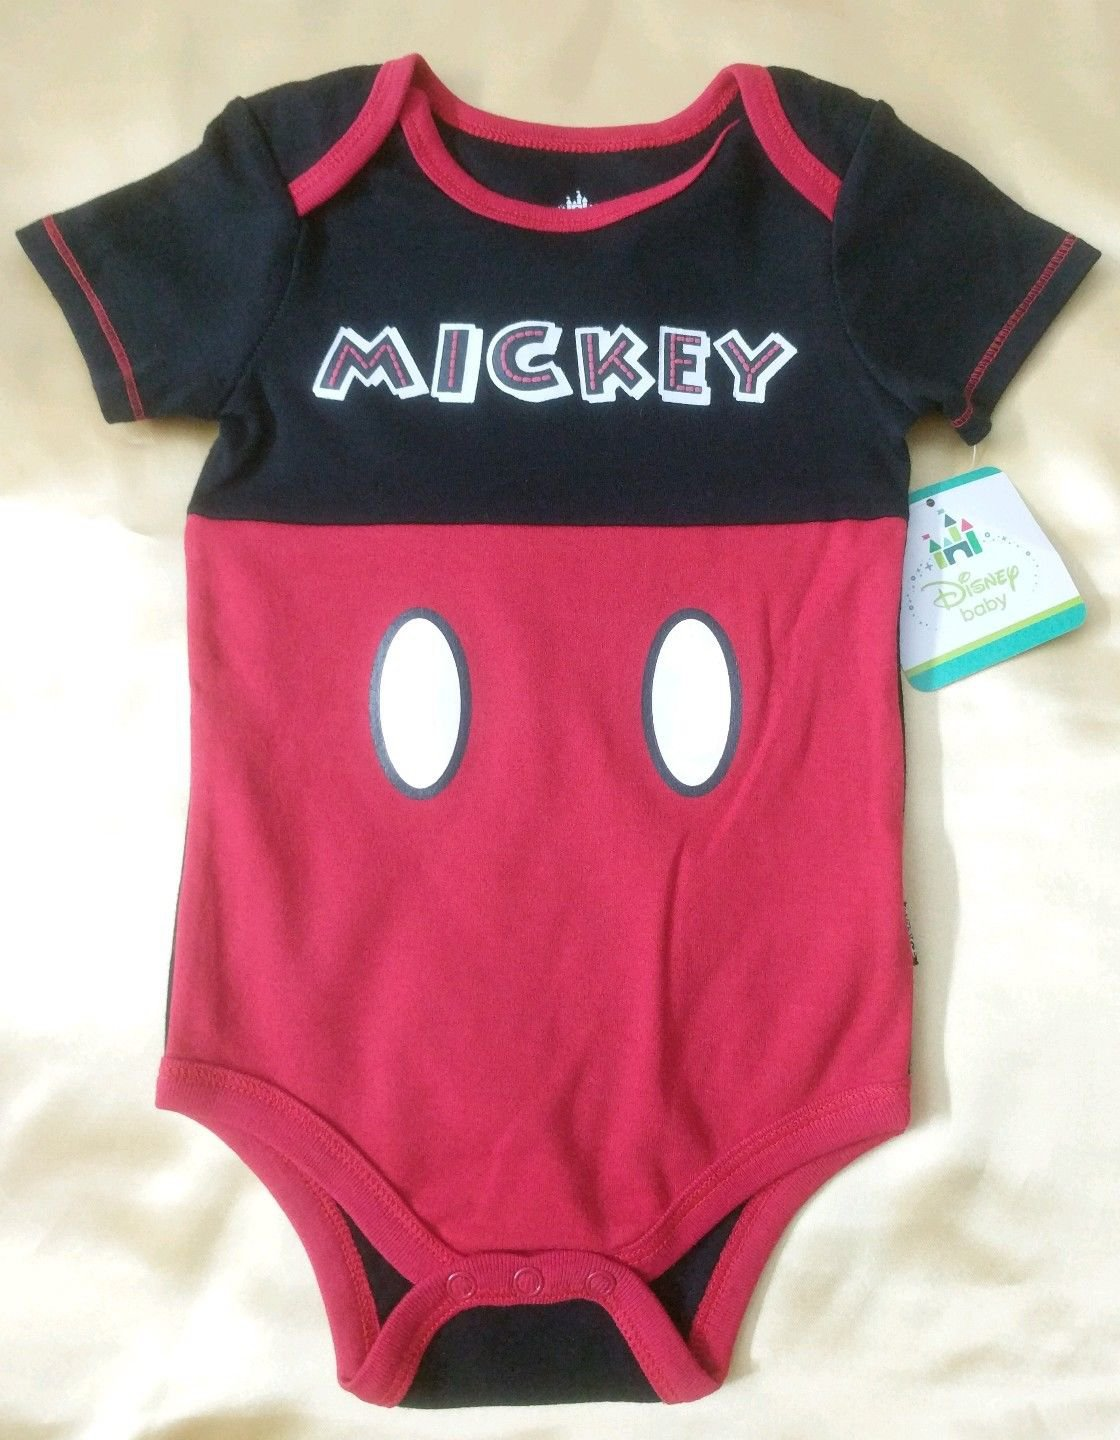 New, Disney Baby Boy Mickey Mouse Baby Creeper Bodysuit One Piece Size 12 Months